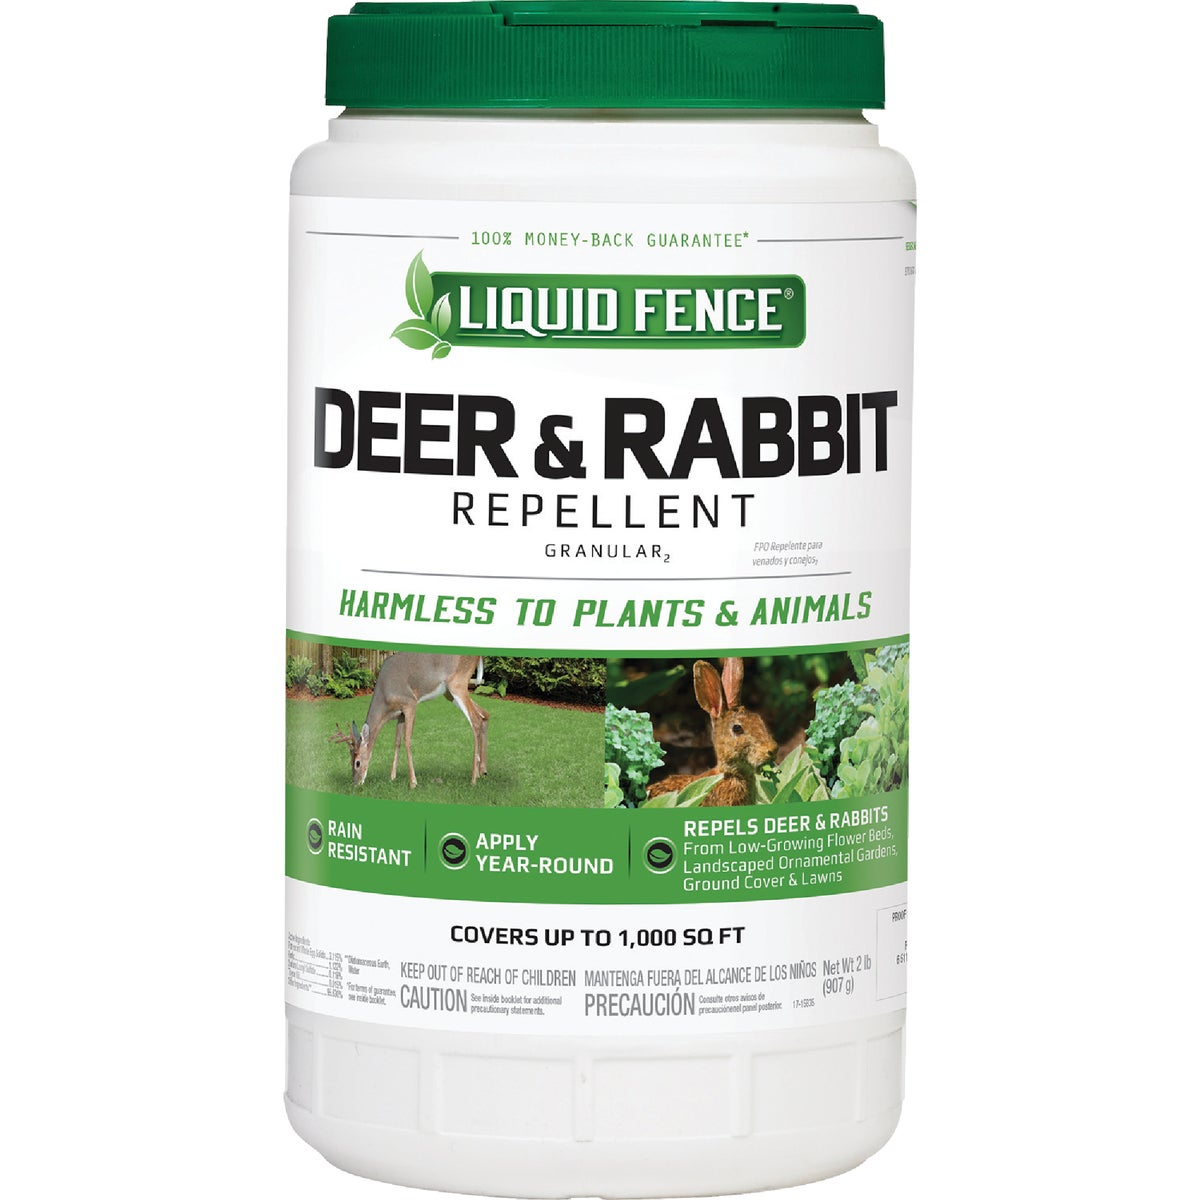 2LB GRAN DEER & RAB REP - 266 by Liquid Fence Co Inc